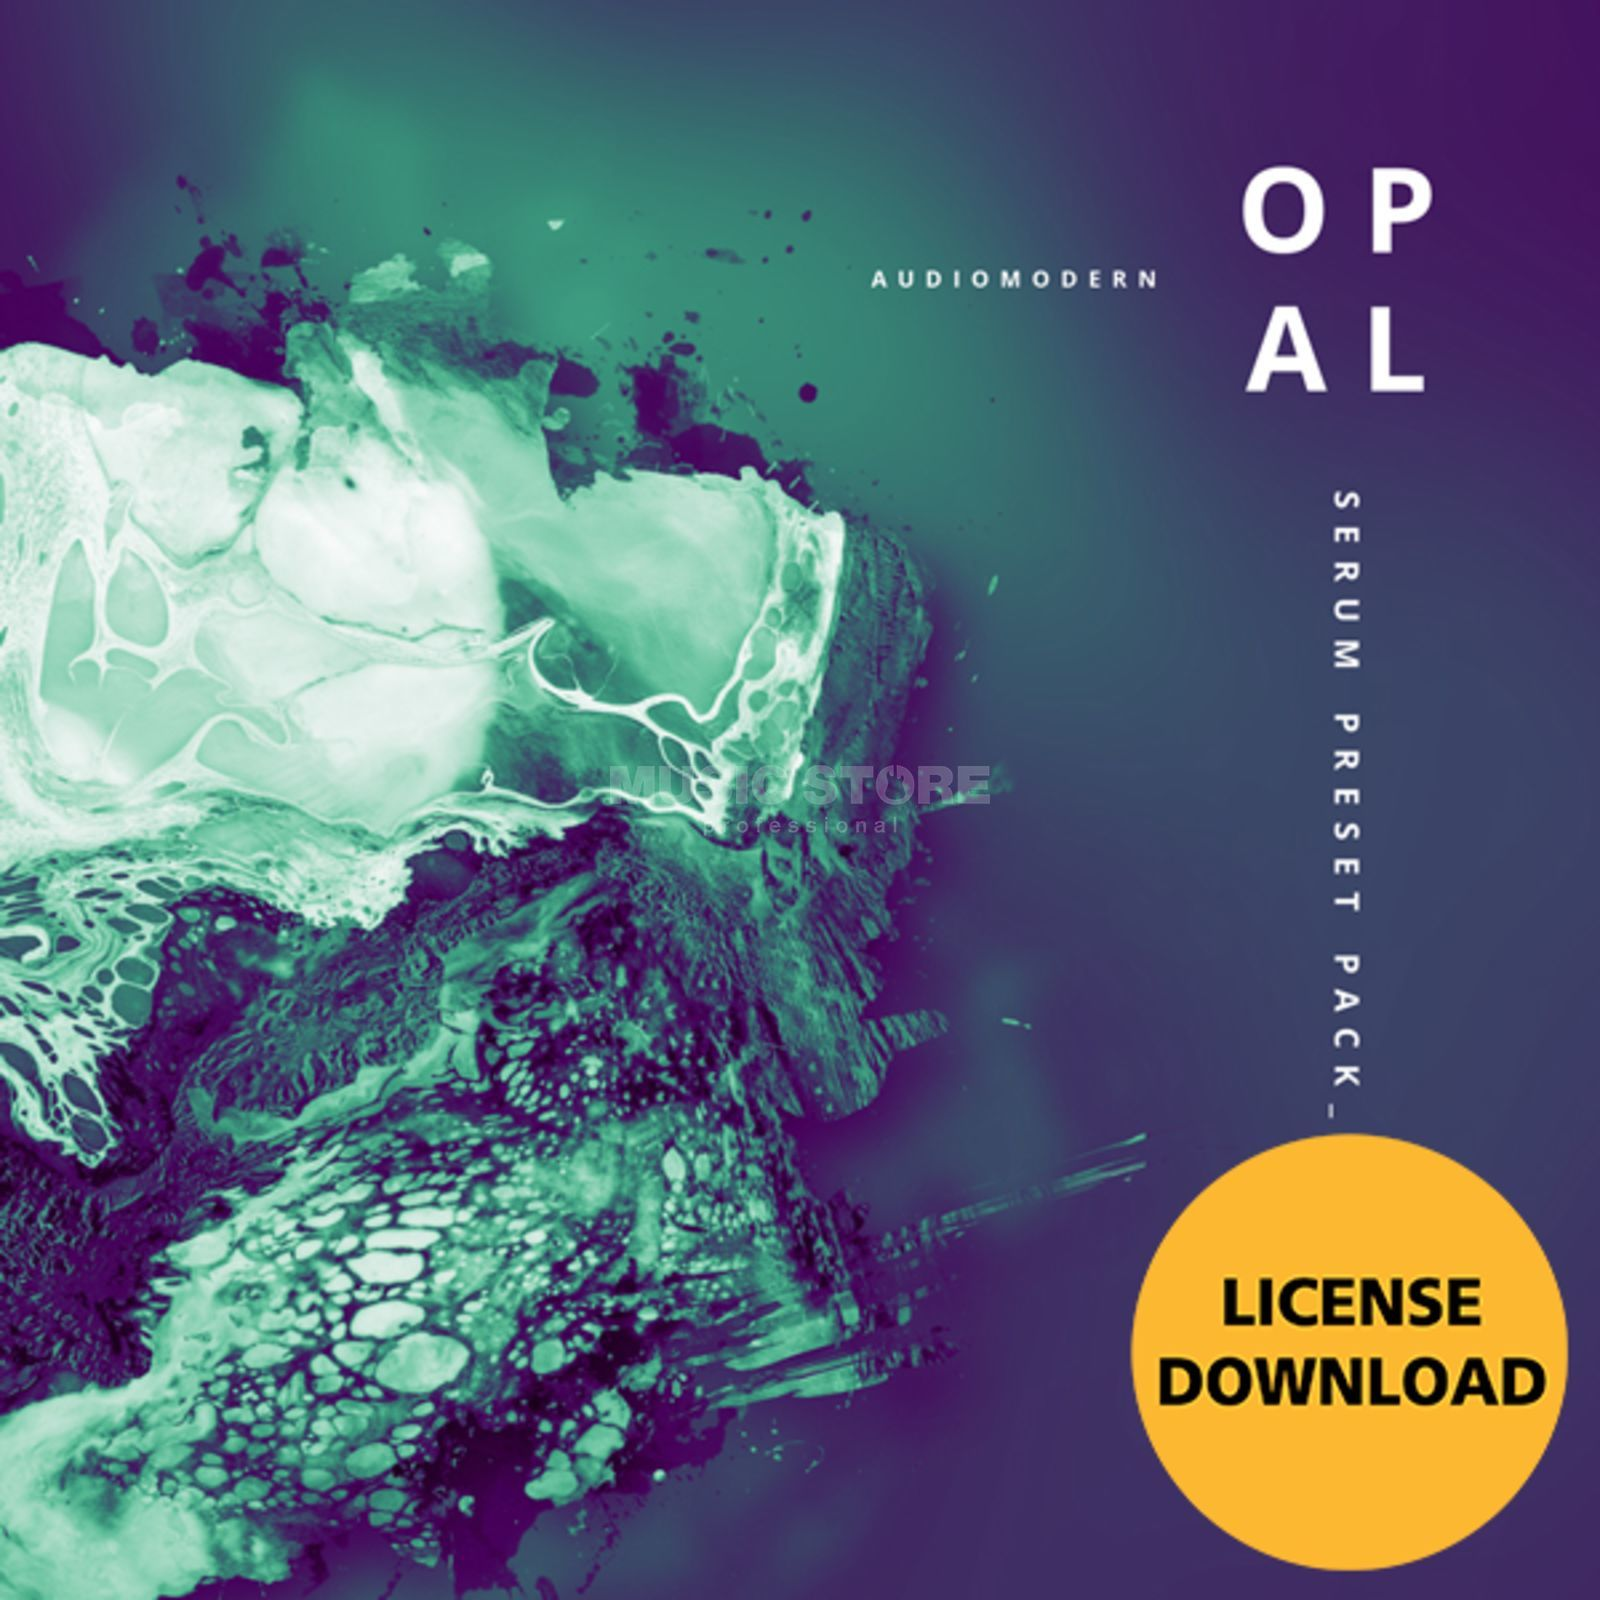 Audiomodern Opal License Code Product Image